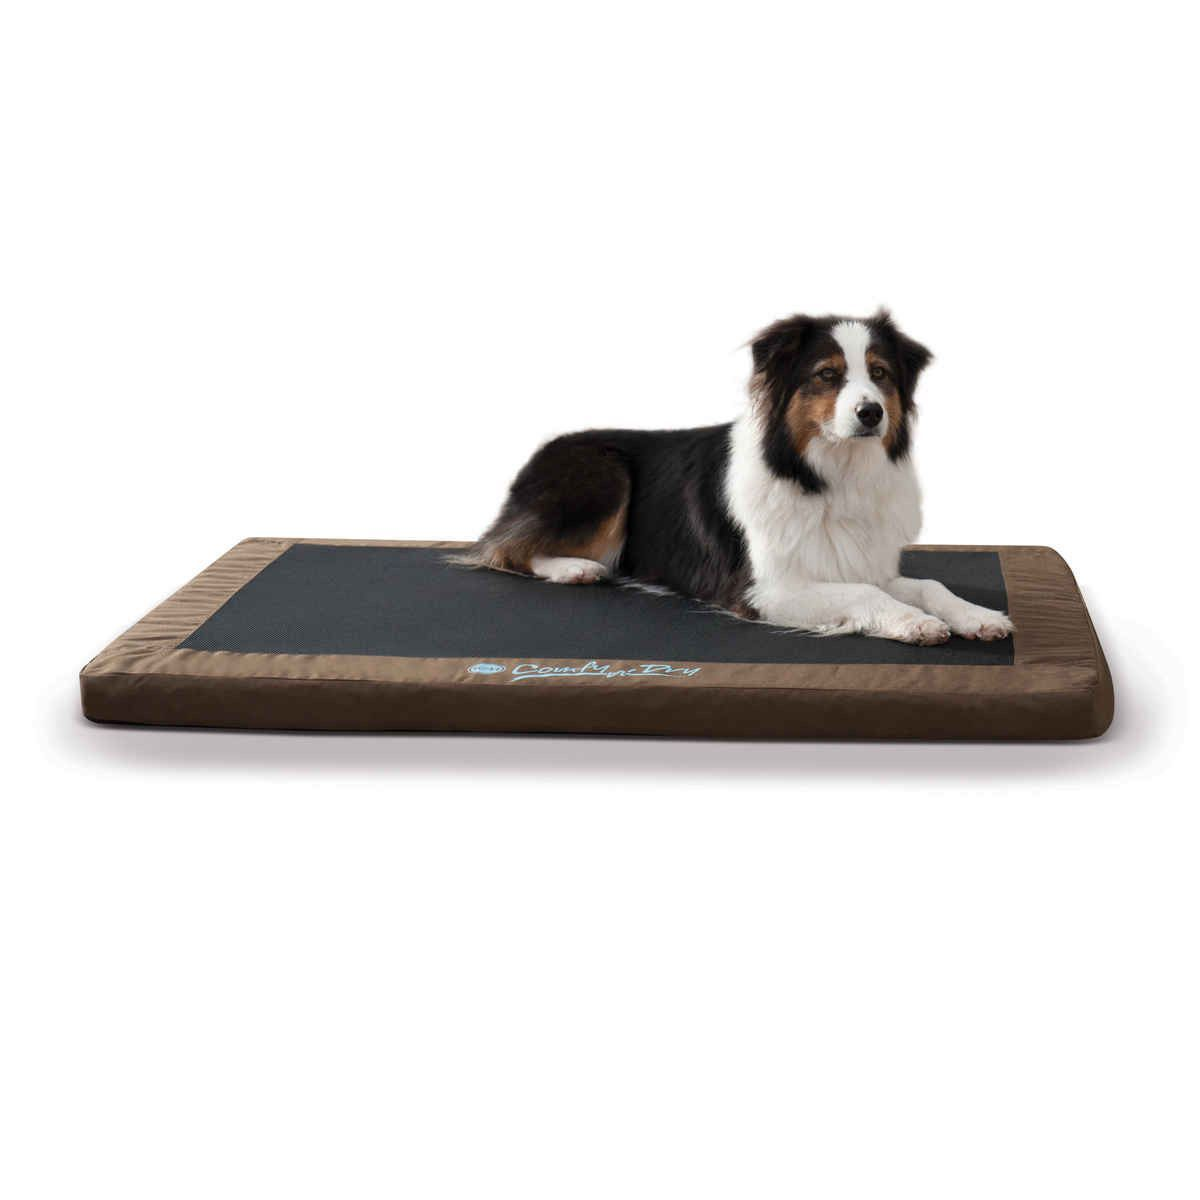 kh pet products comfy n' dry indooroutdoor pet bed large  - kh pet products comfy n' dry indooroutdoor pet bed large chocolate